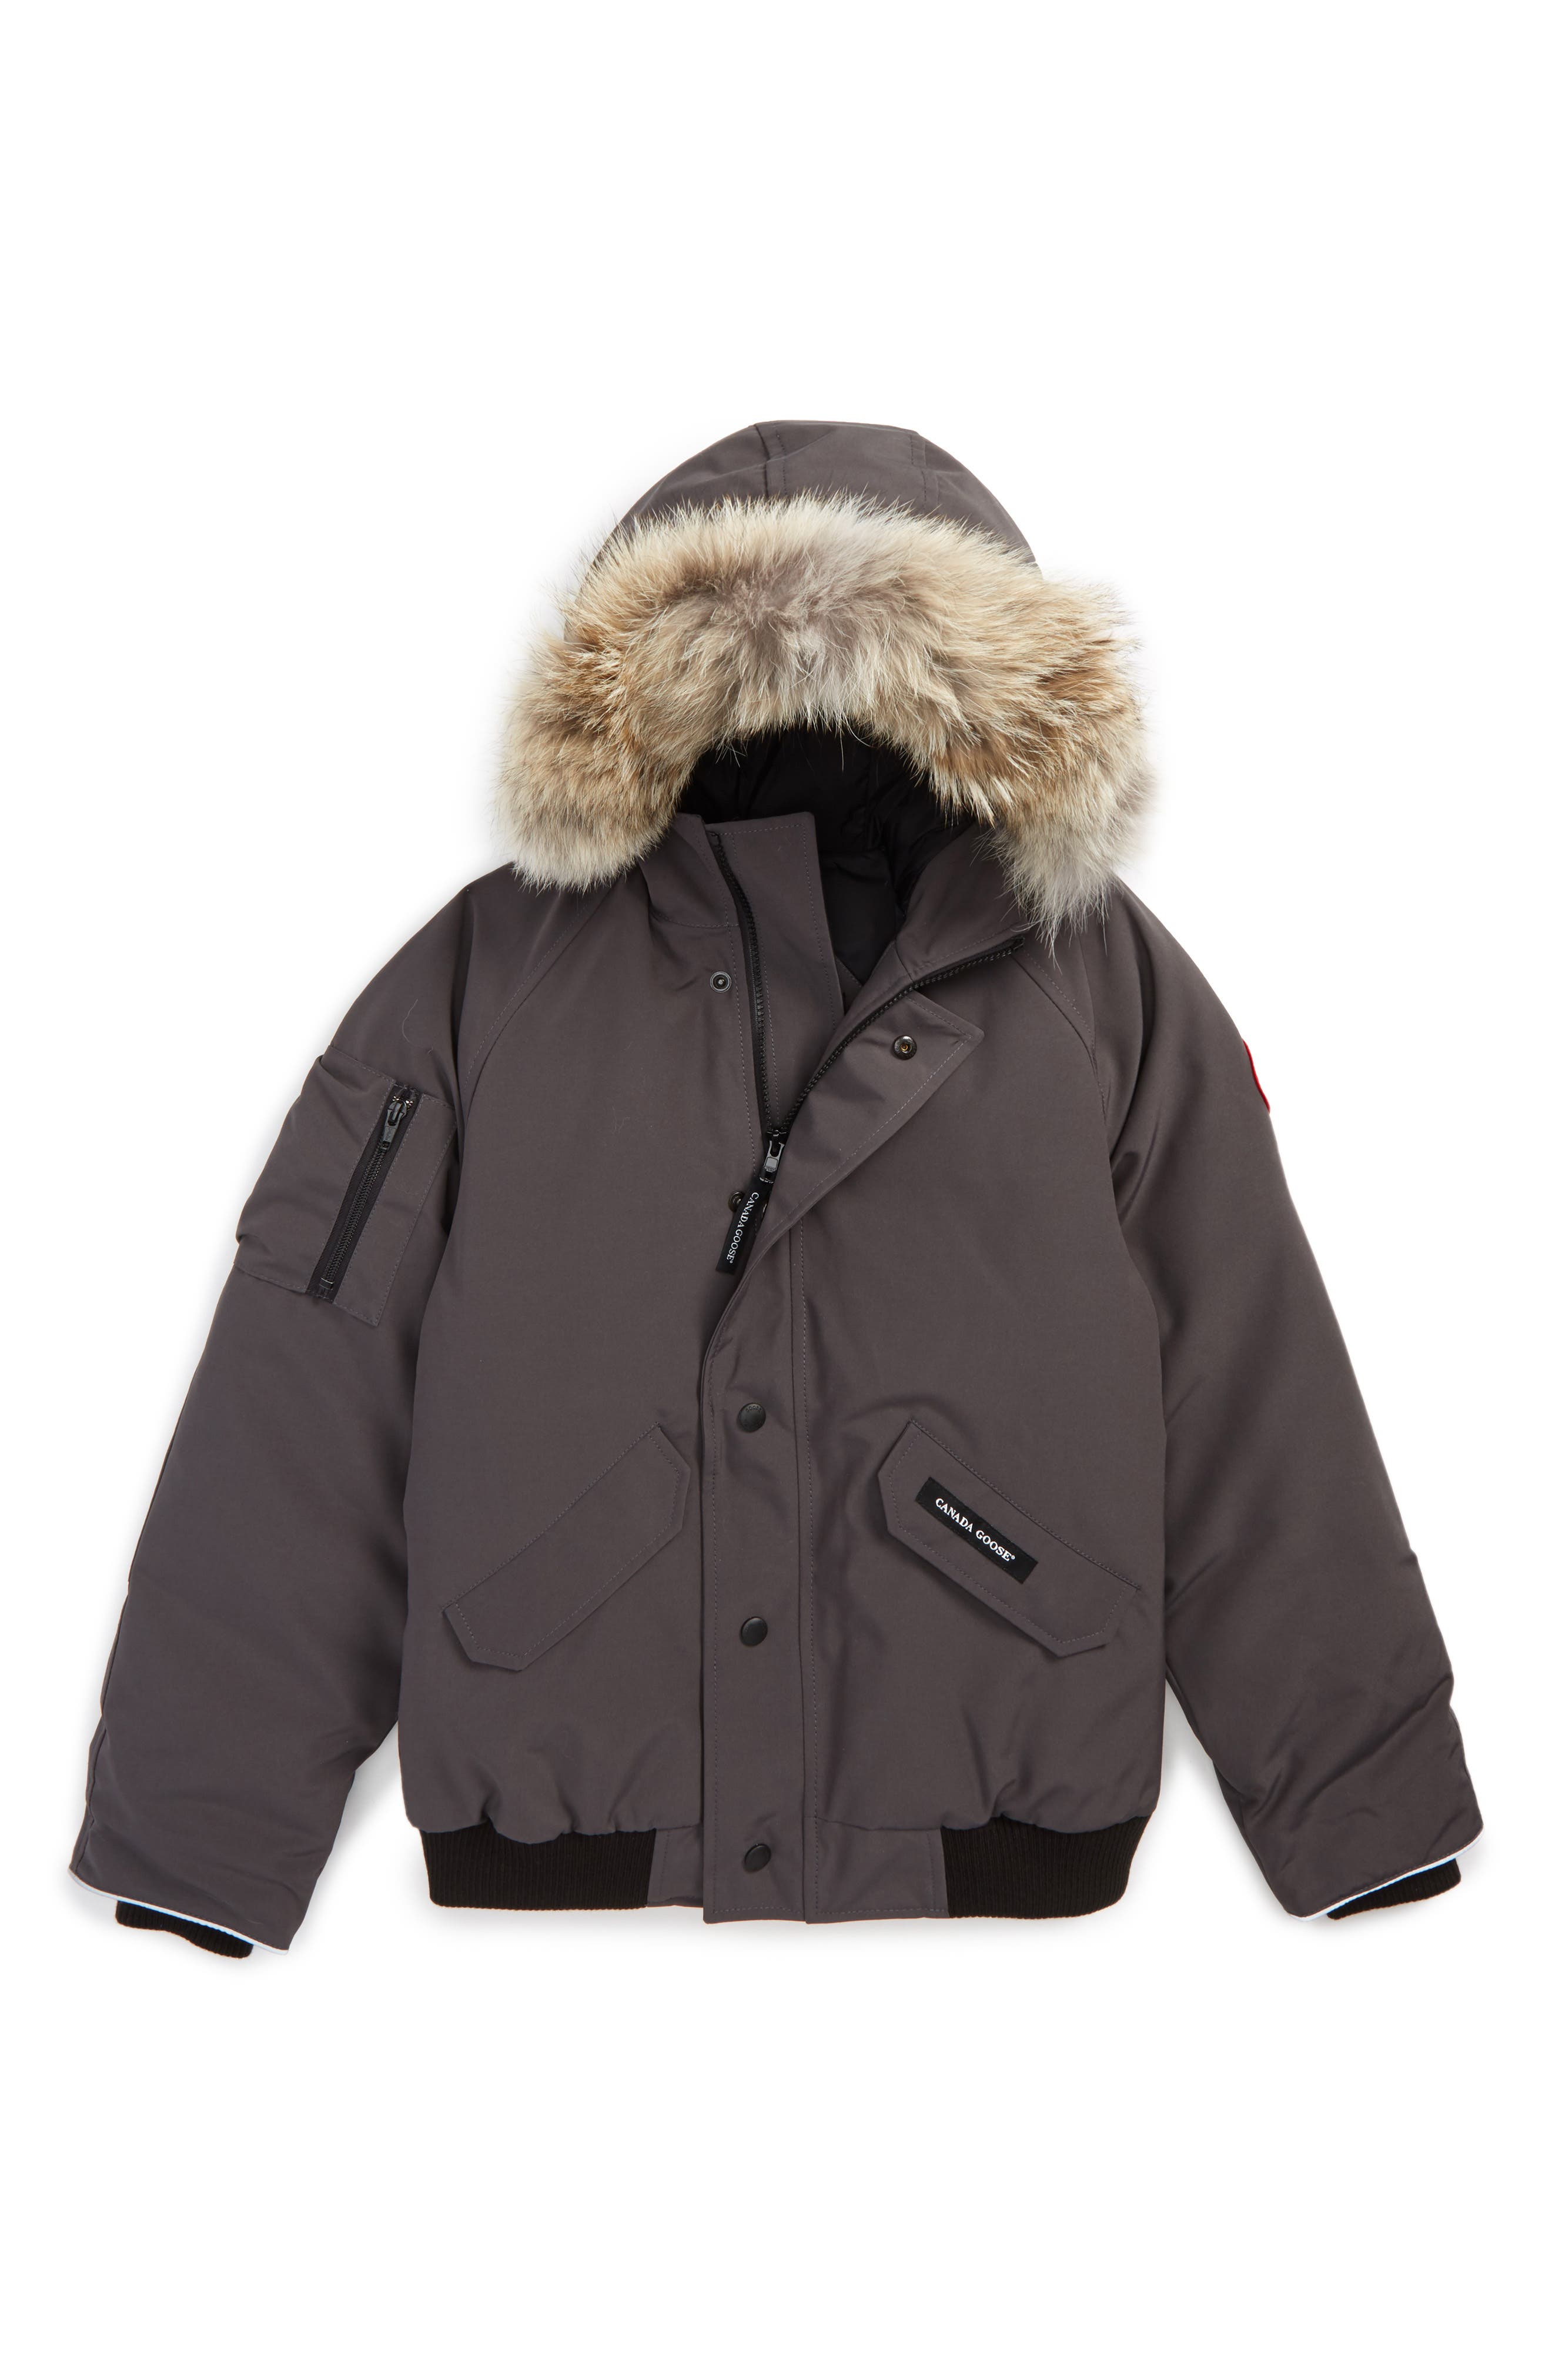 'Rundle' Down Bomber Jacket with Genuine Coyote Fur Trim,                         Main,                         color, GRAPHITE